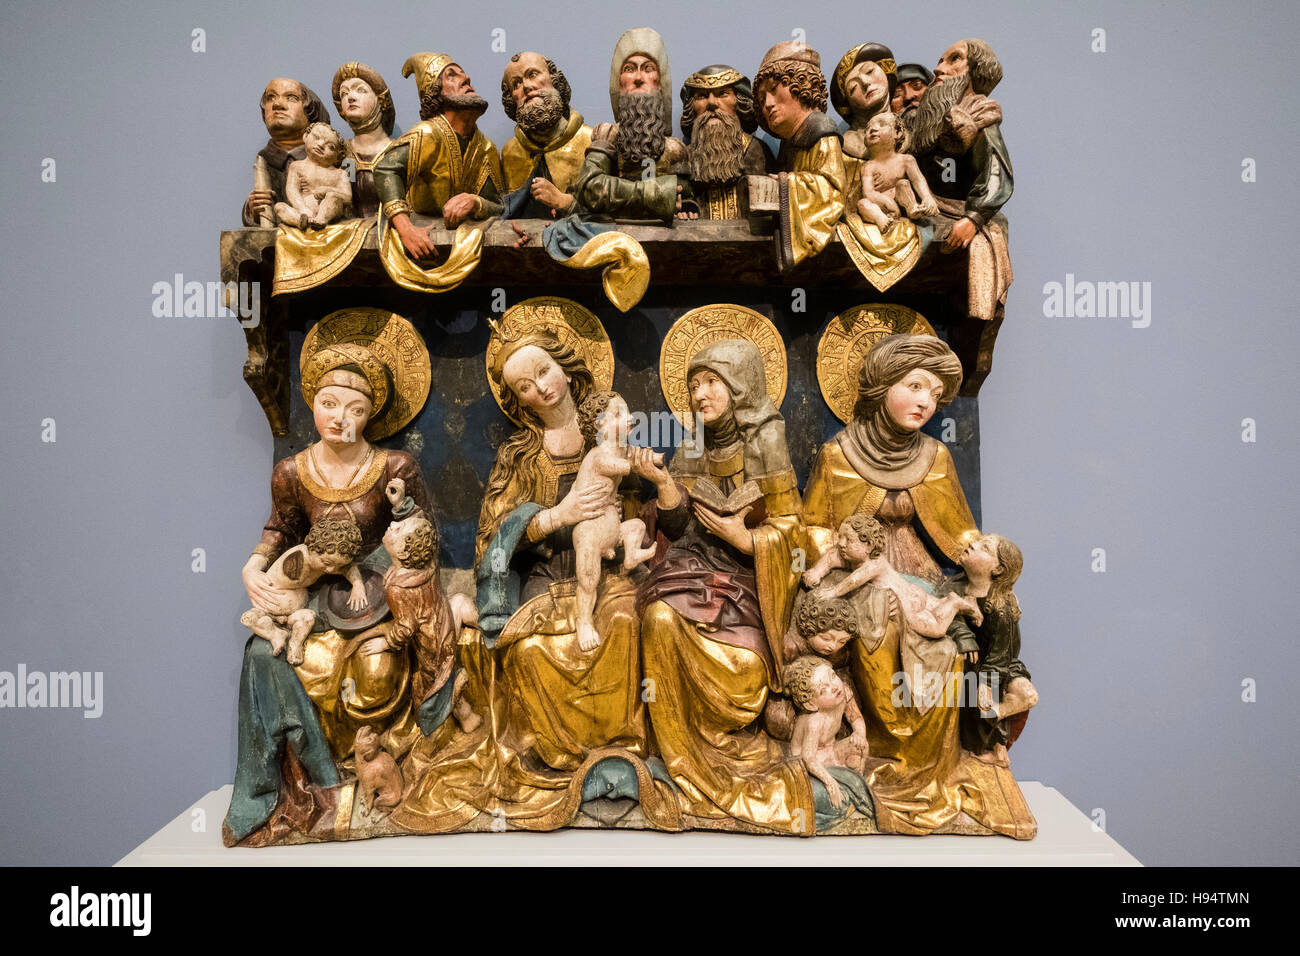 Holy Kinship religious carving in Bode Museum , berlin, Germany - Stock Image